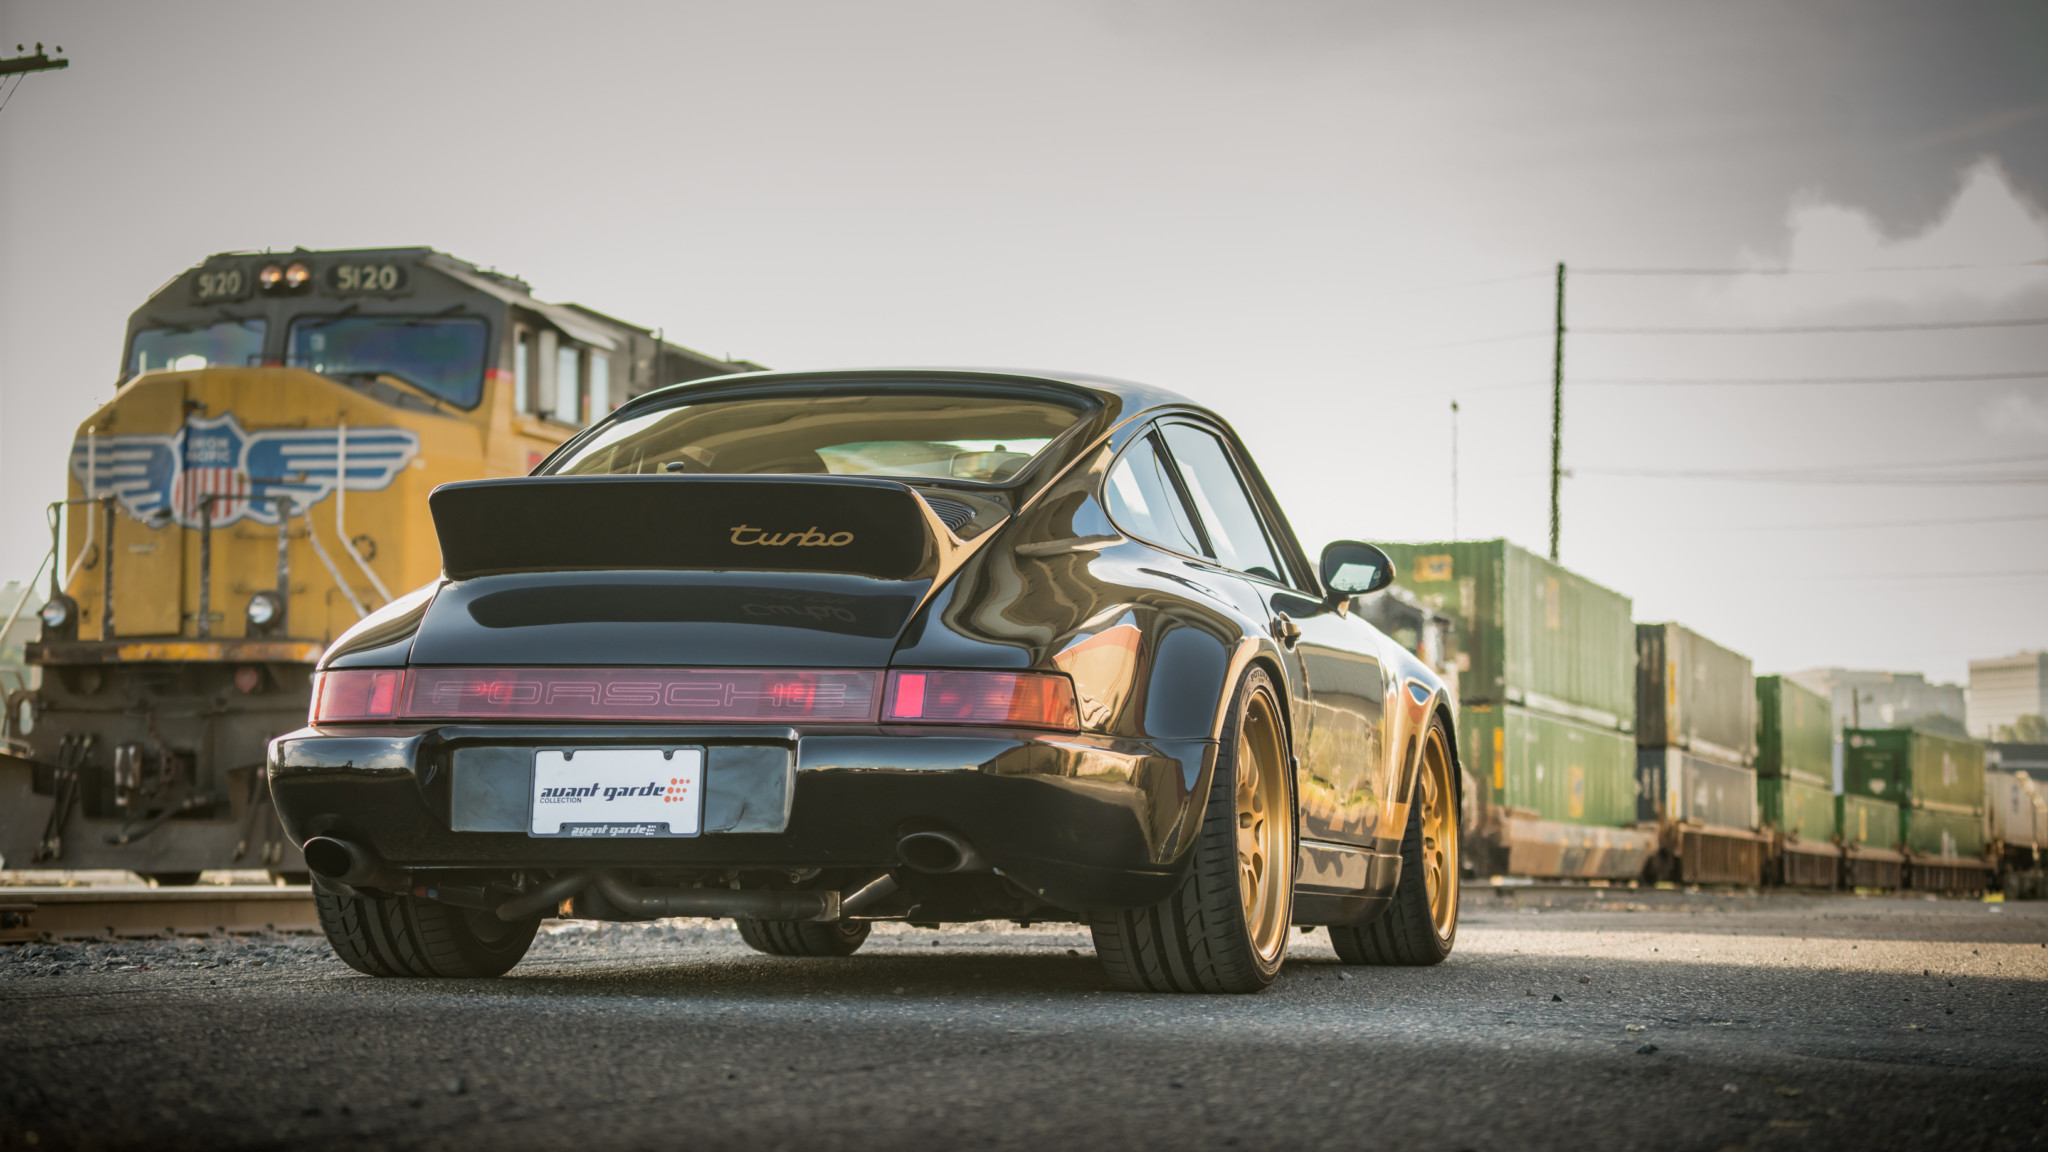 1991 Porsche 964 Turbo Hd Wallpaper Background Image 2048x1152 Id 1018386 Wallpaper Abyss